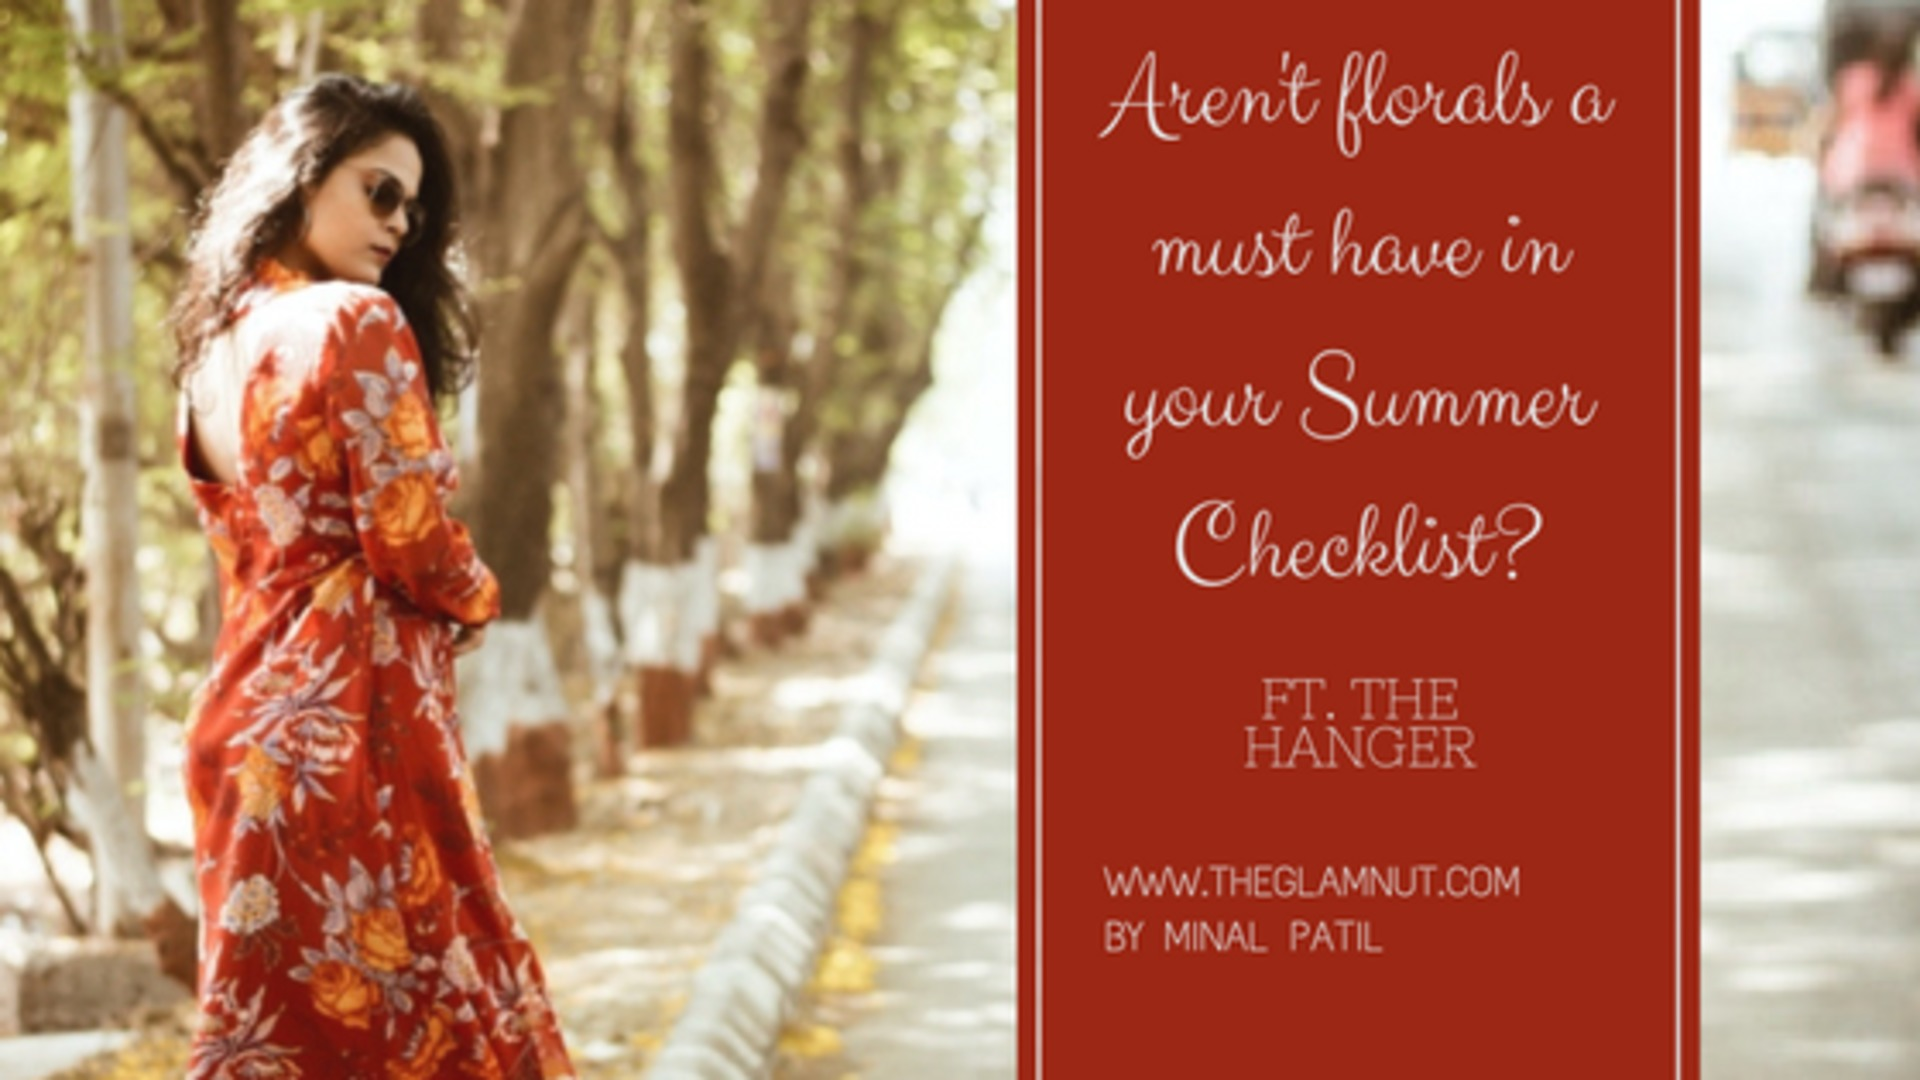 Aren't Florals a must have in your Summer checklist? | Ft. The Hanger image